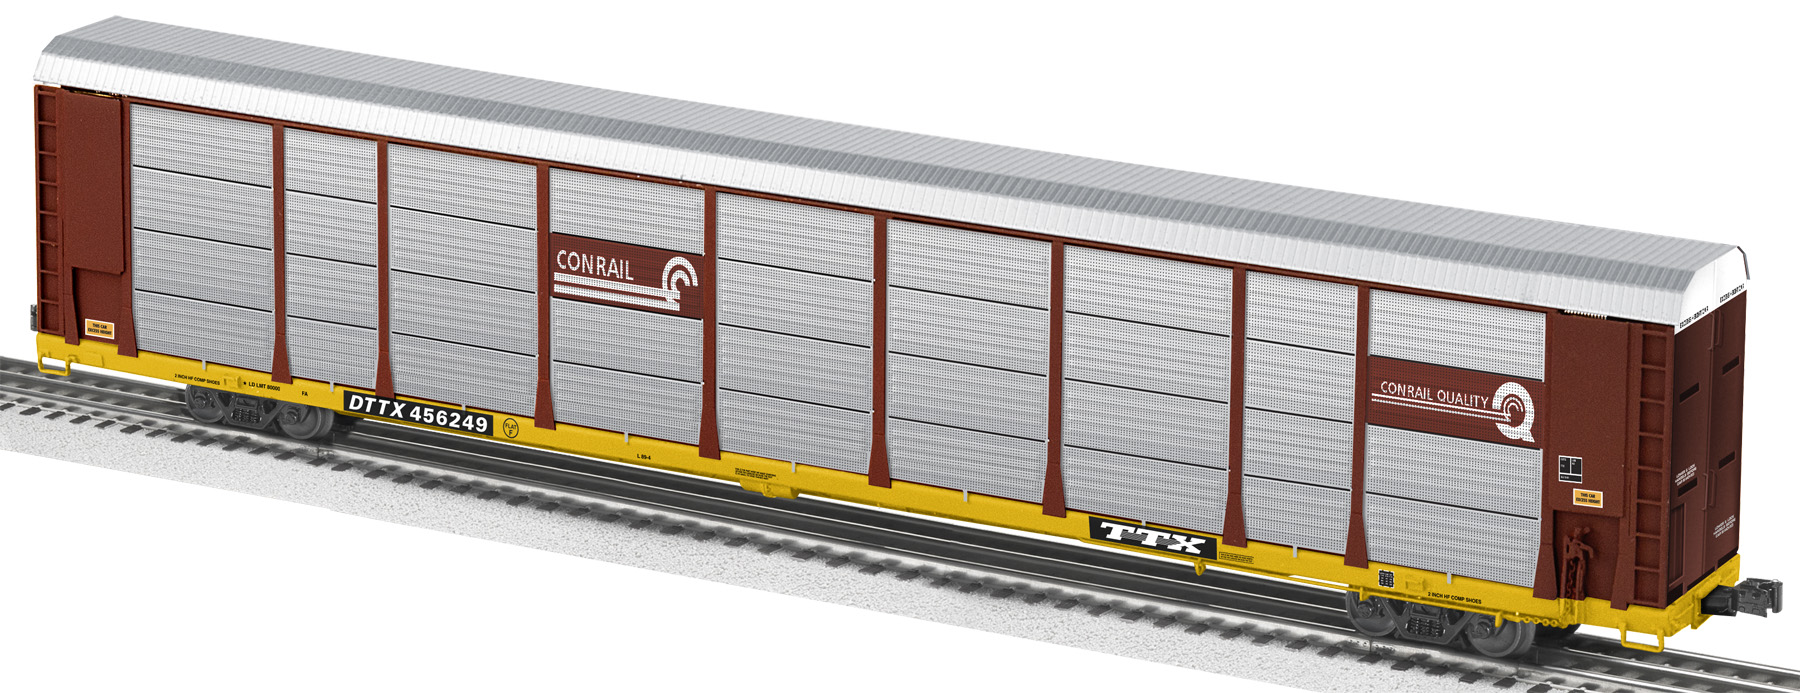 Conrail 89 39 auto rack car 456249 for Can a motor carrier broker freight